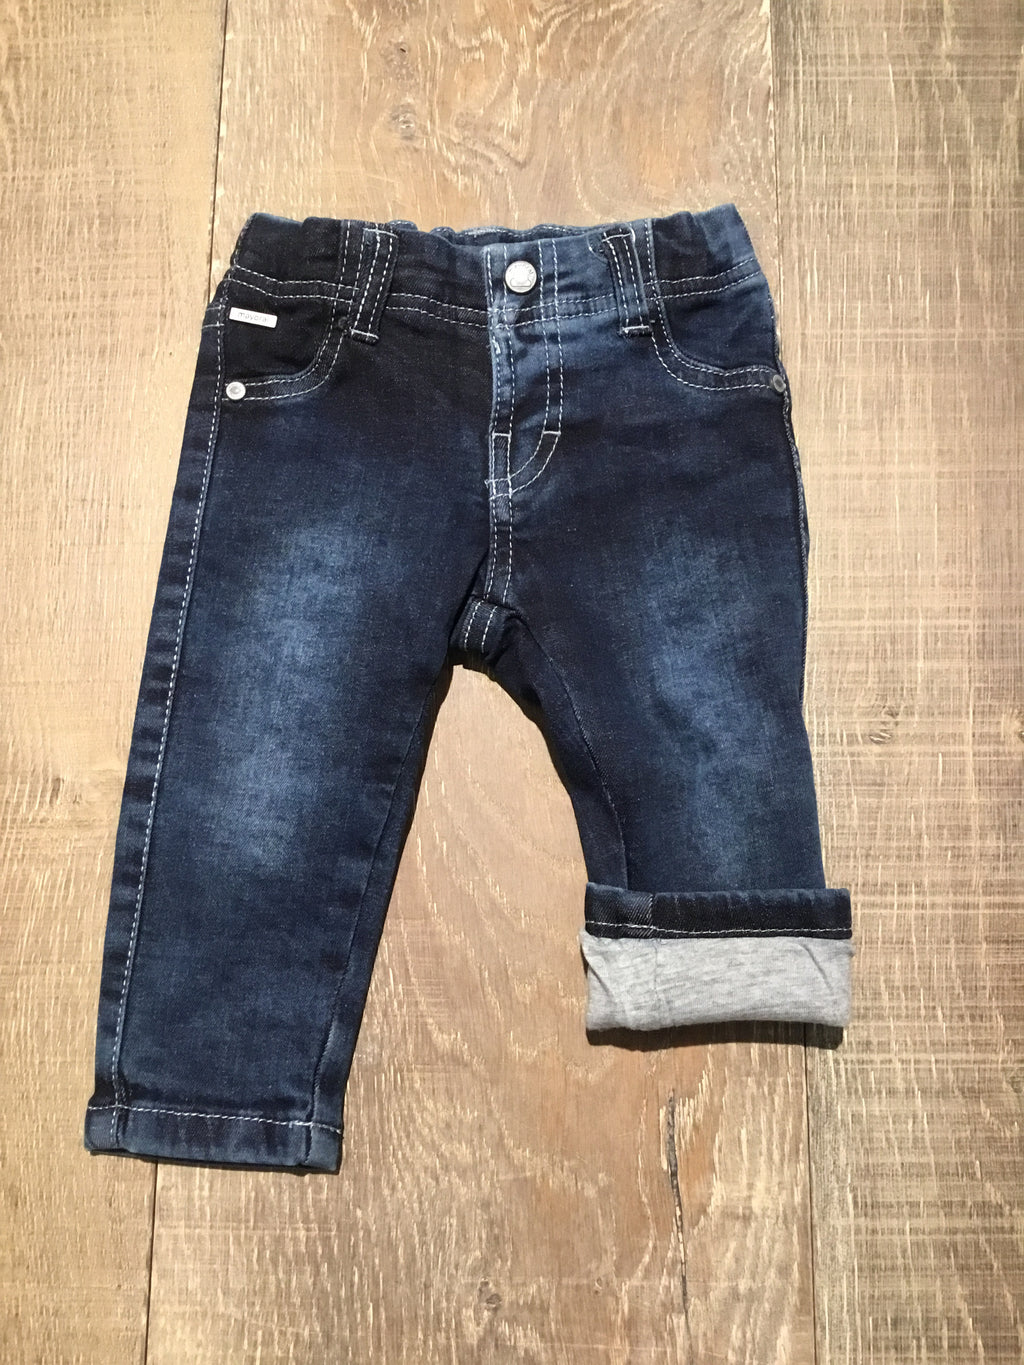 Adjustable Jeans with Jersey Lining